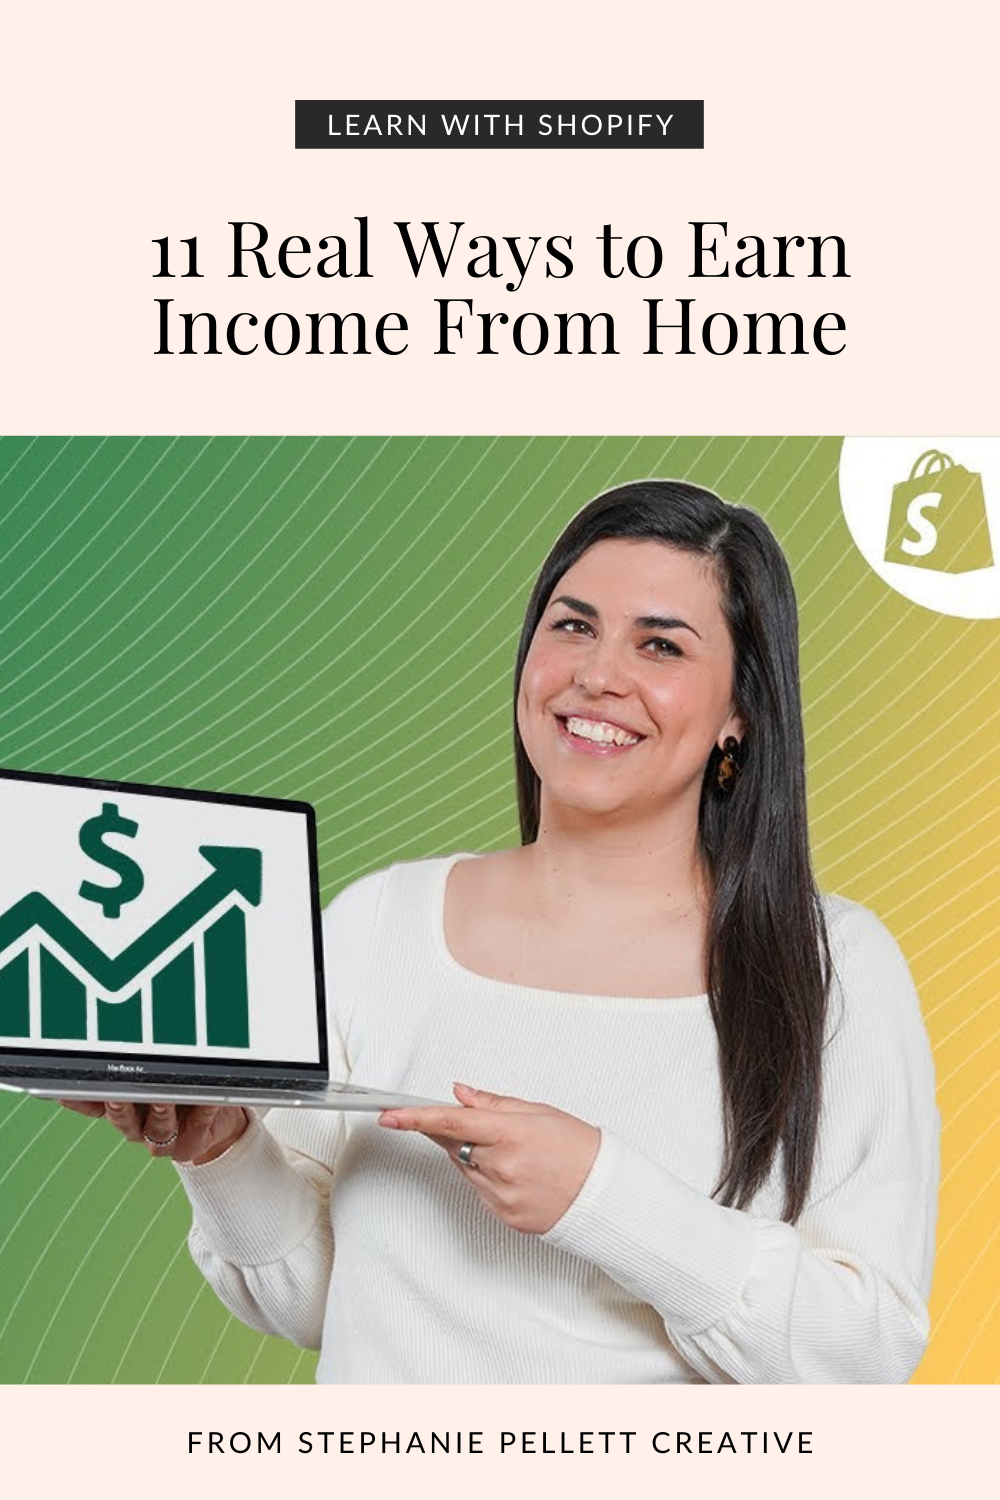 Want to Make Money Online? Here are 11 Real Ways to Earn Money From Home – Stephanie Pellett Creative